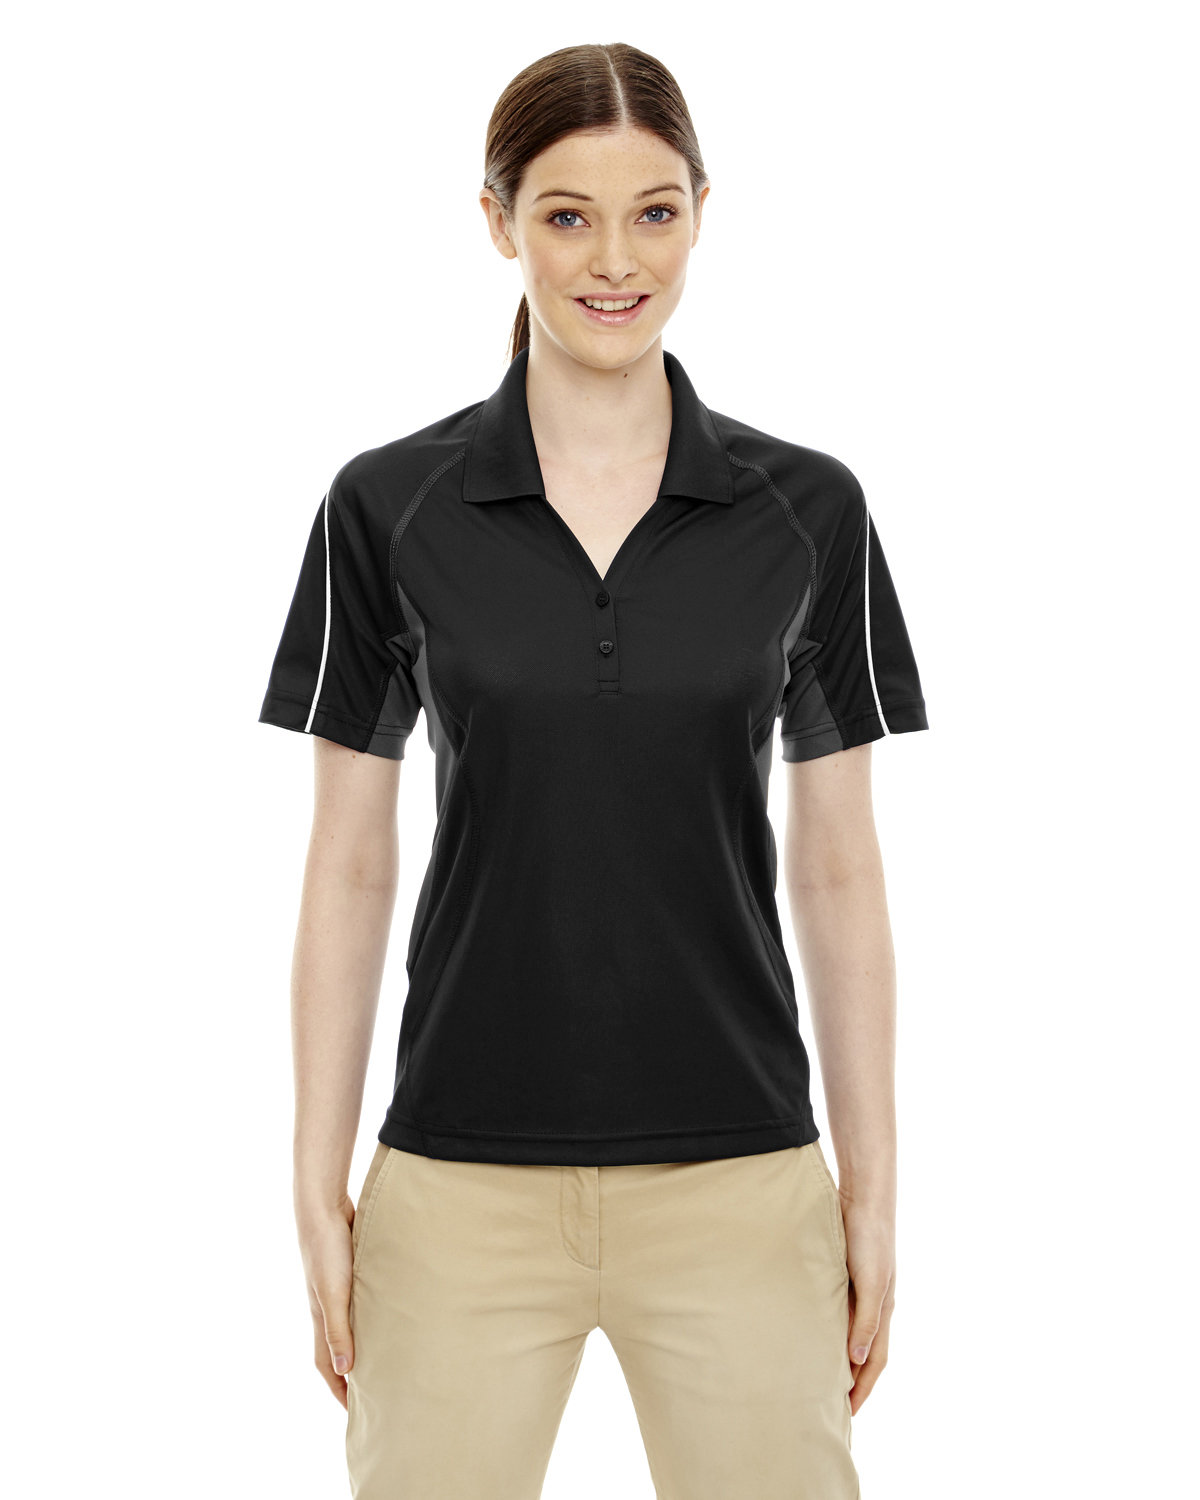 Extreme Ladies' Eperformance™ Parallel Snag Protection Polo with Piping BLACK